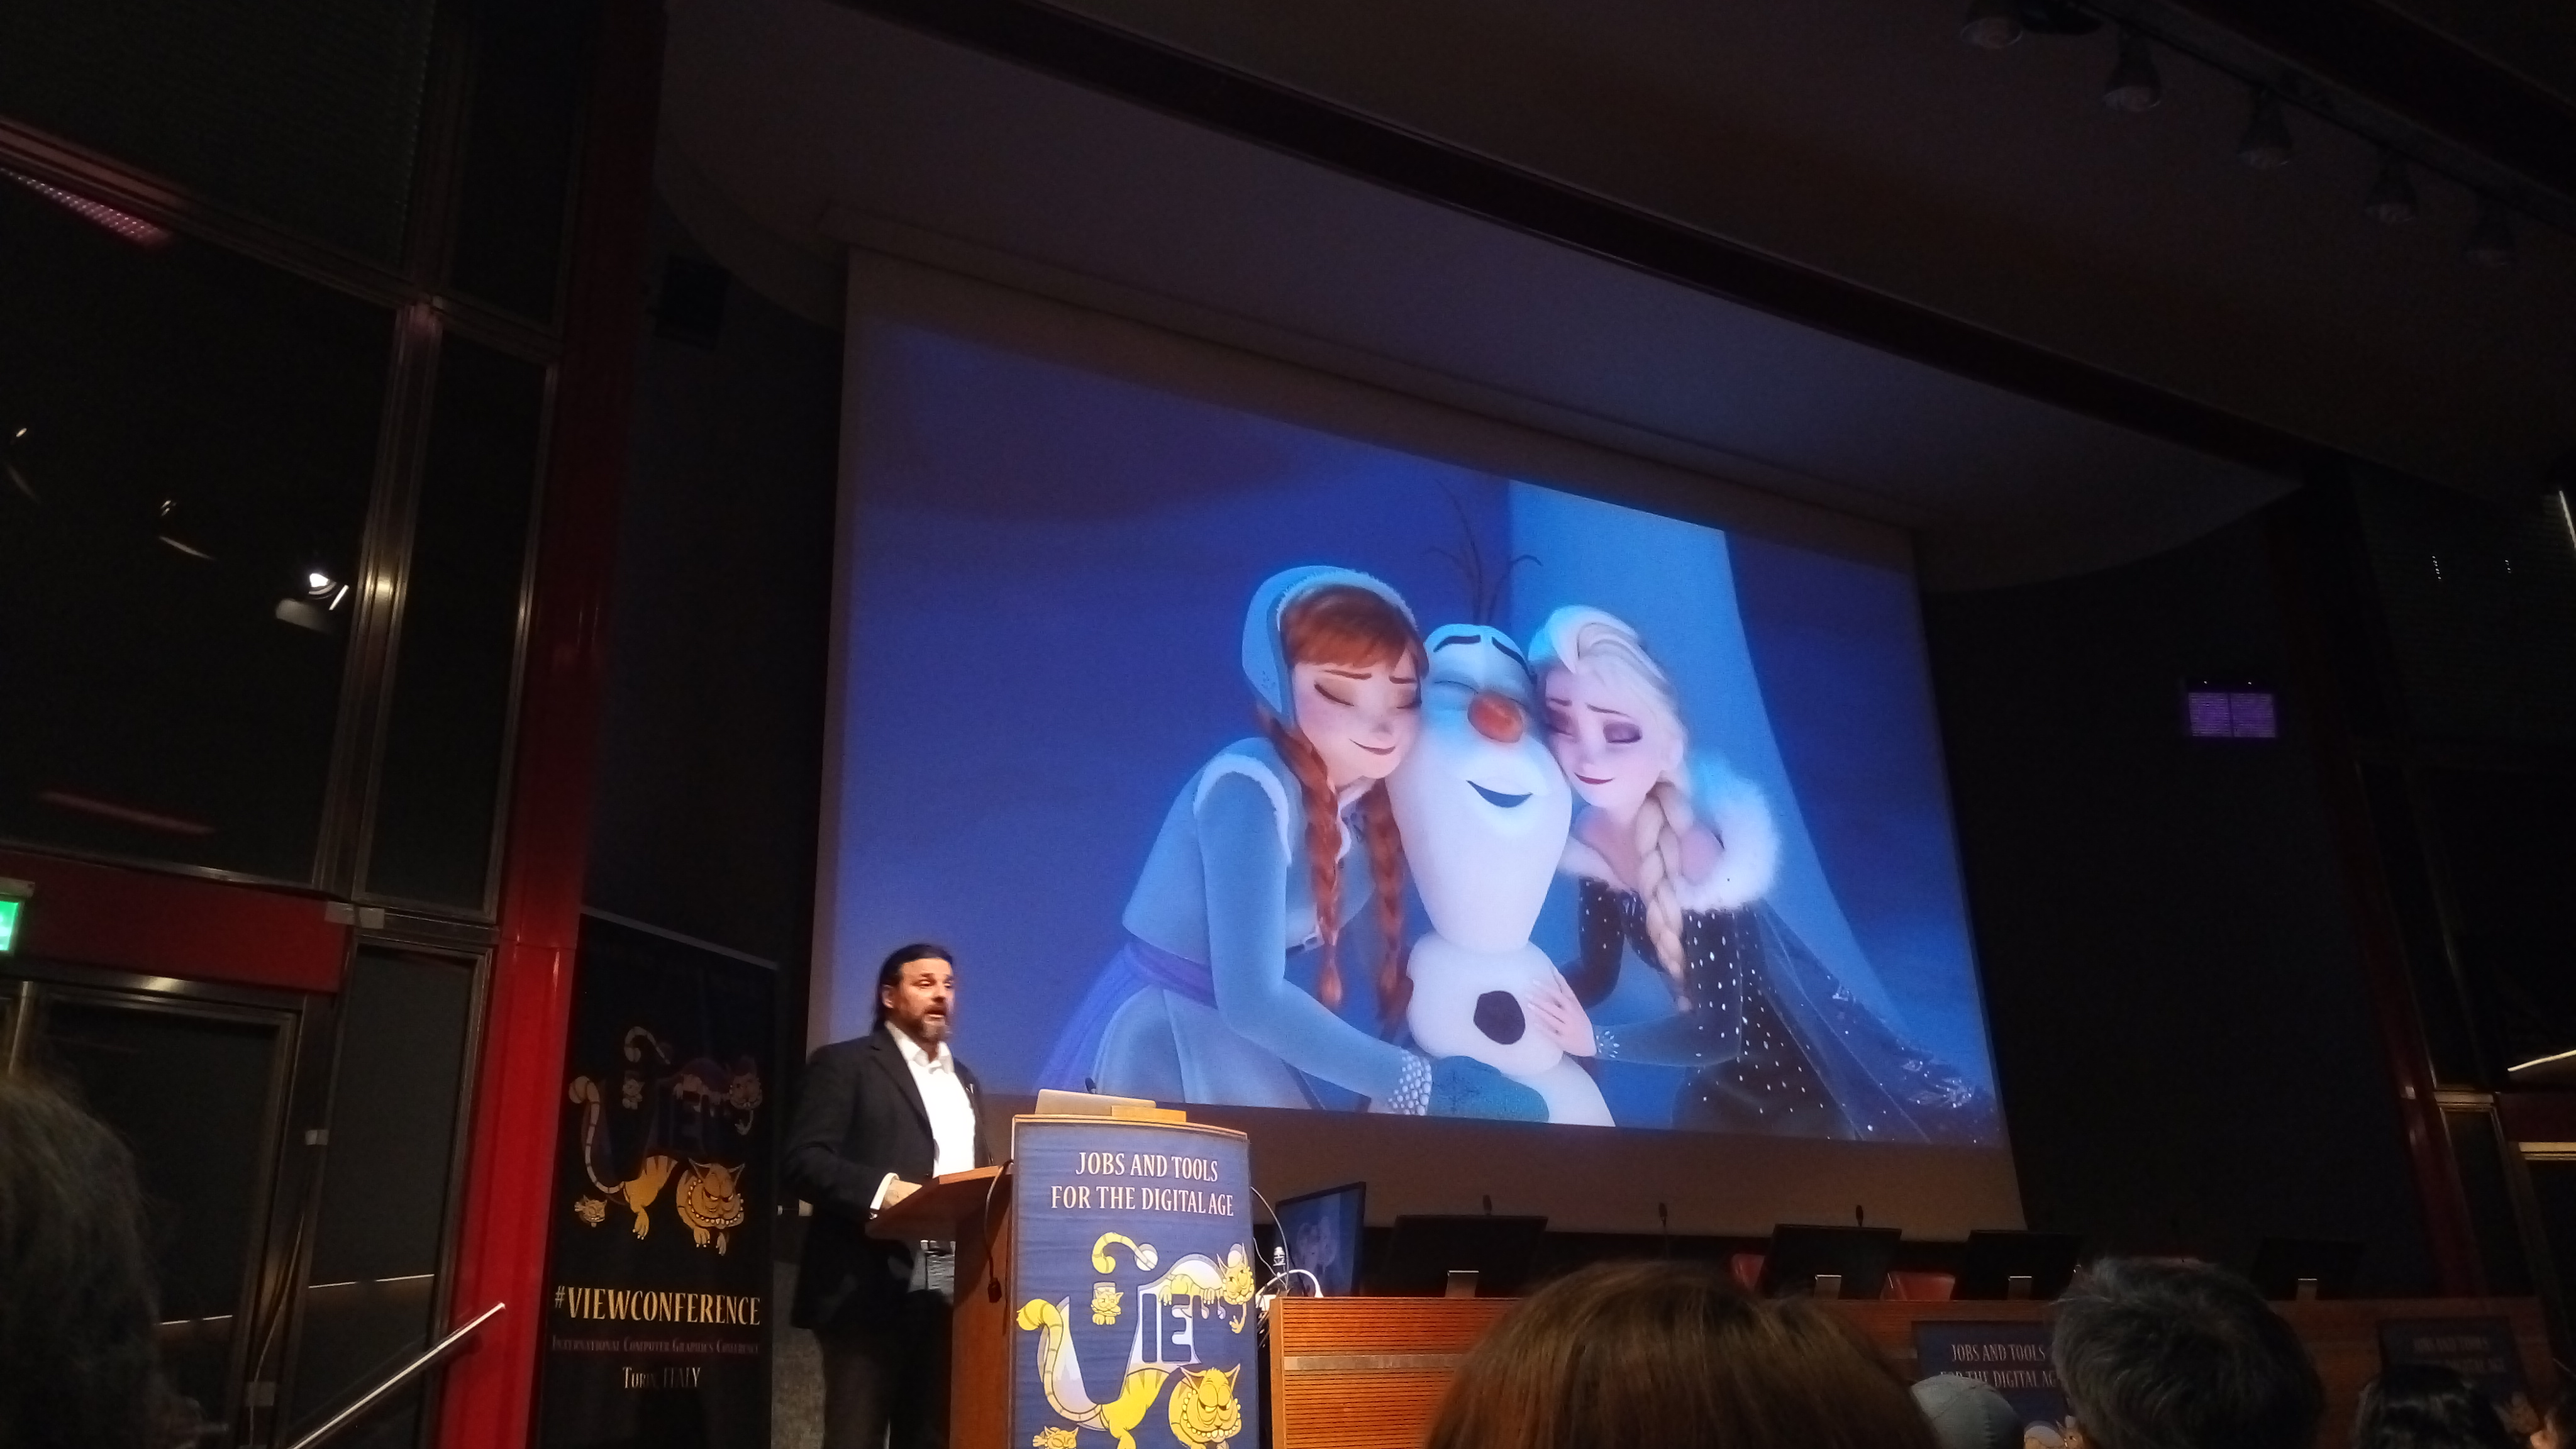 olaf frozen adventure jacomini view conference1